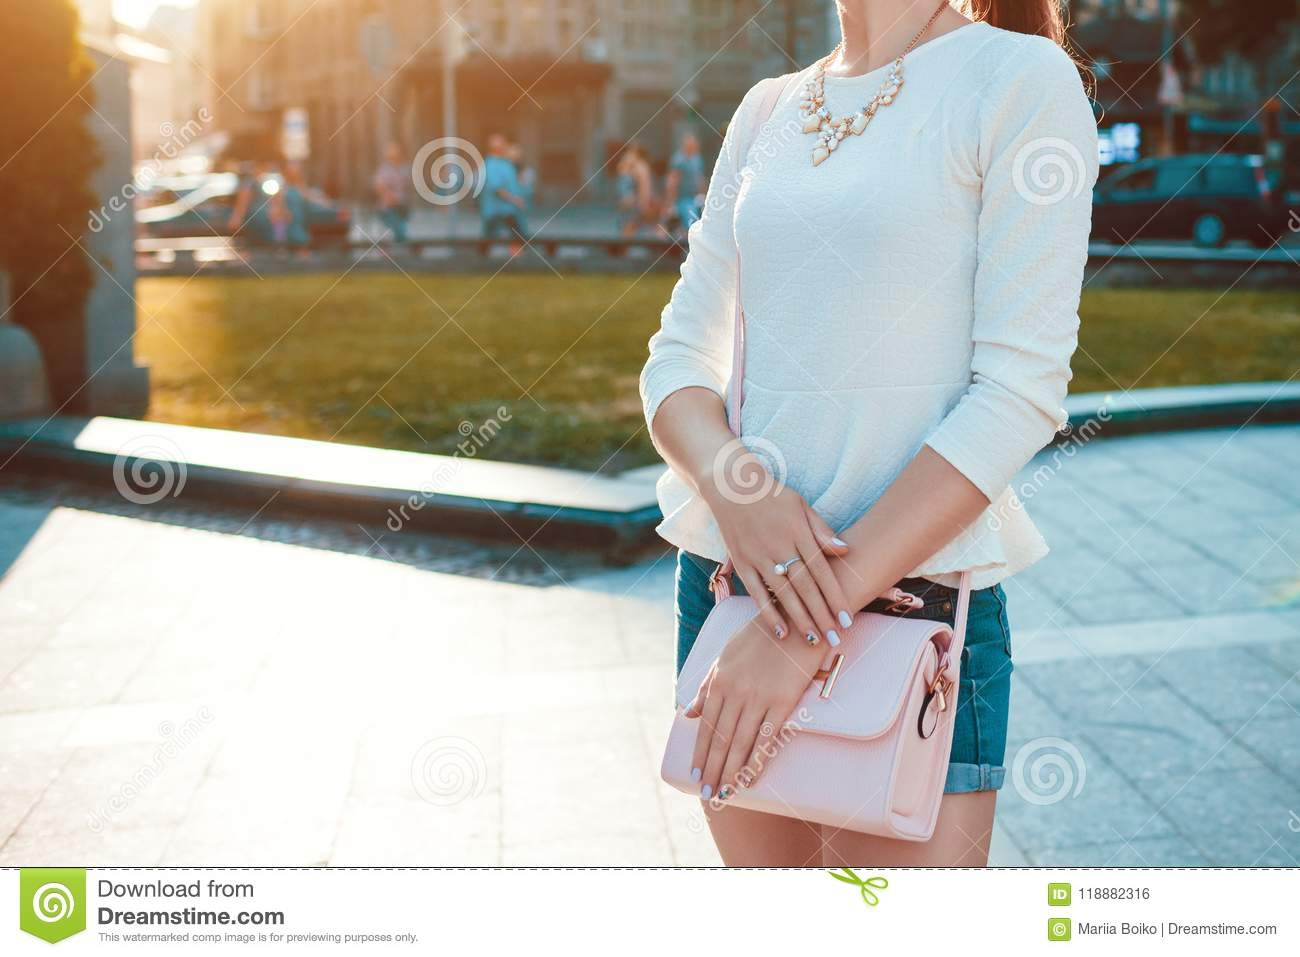 bc0ff178 Young woman wearing stlish outfit with accessories outdoors. Trendy female  handbag, clothing and jewellery. Beauty fashion concept